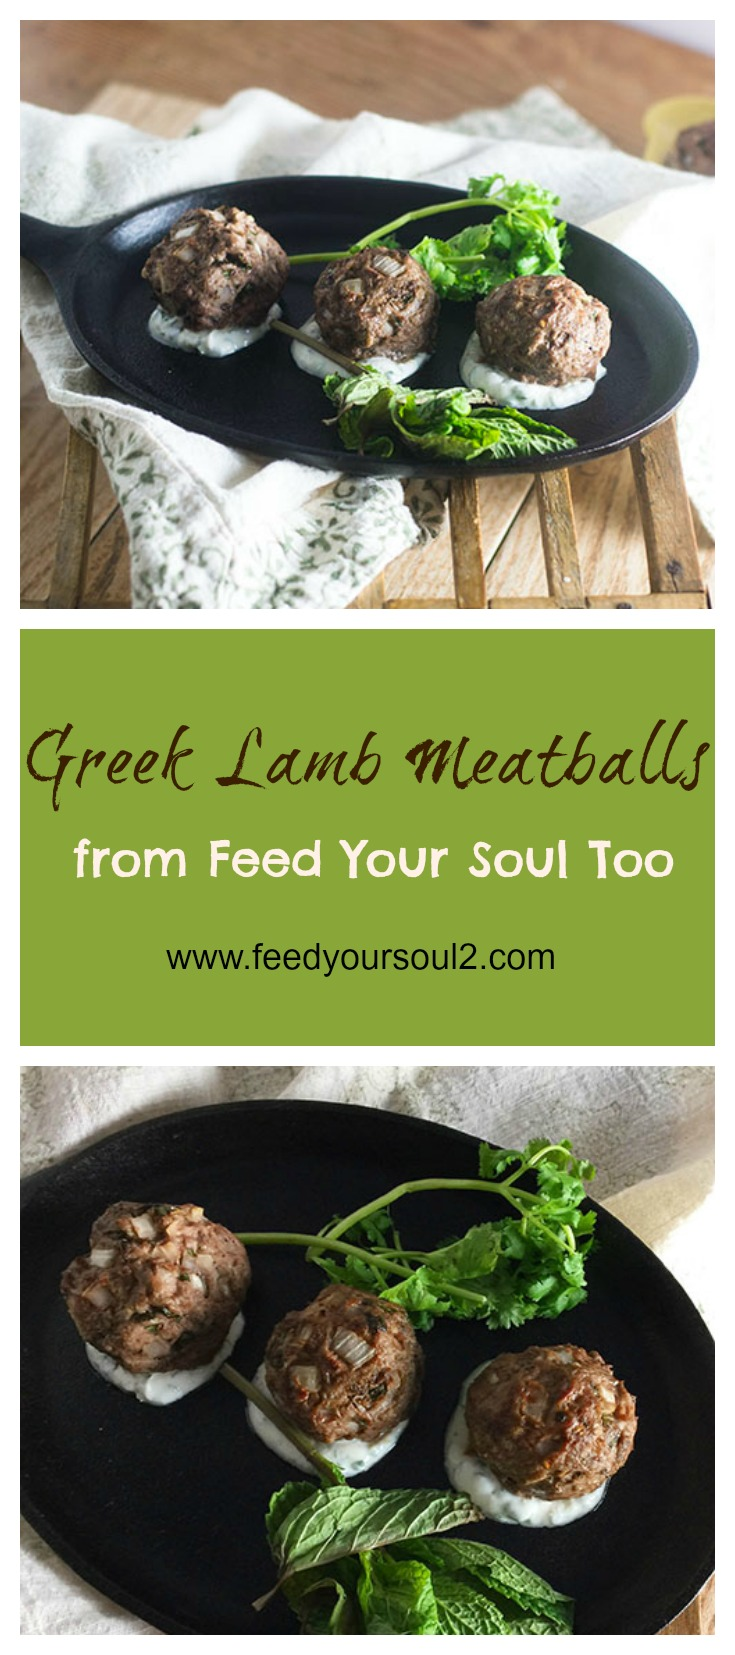 Greek Lamb Meatballs #appetizers #greekfood #meatballs #entertaining | feedyoursoul2.com